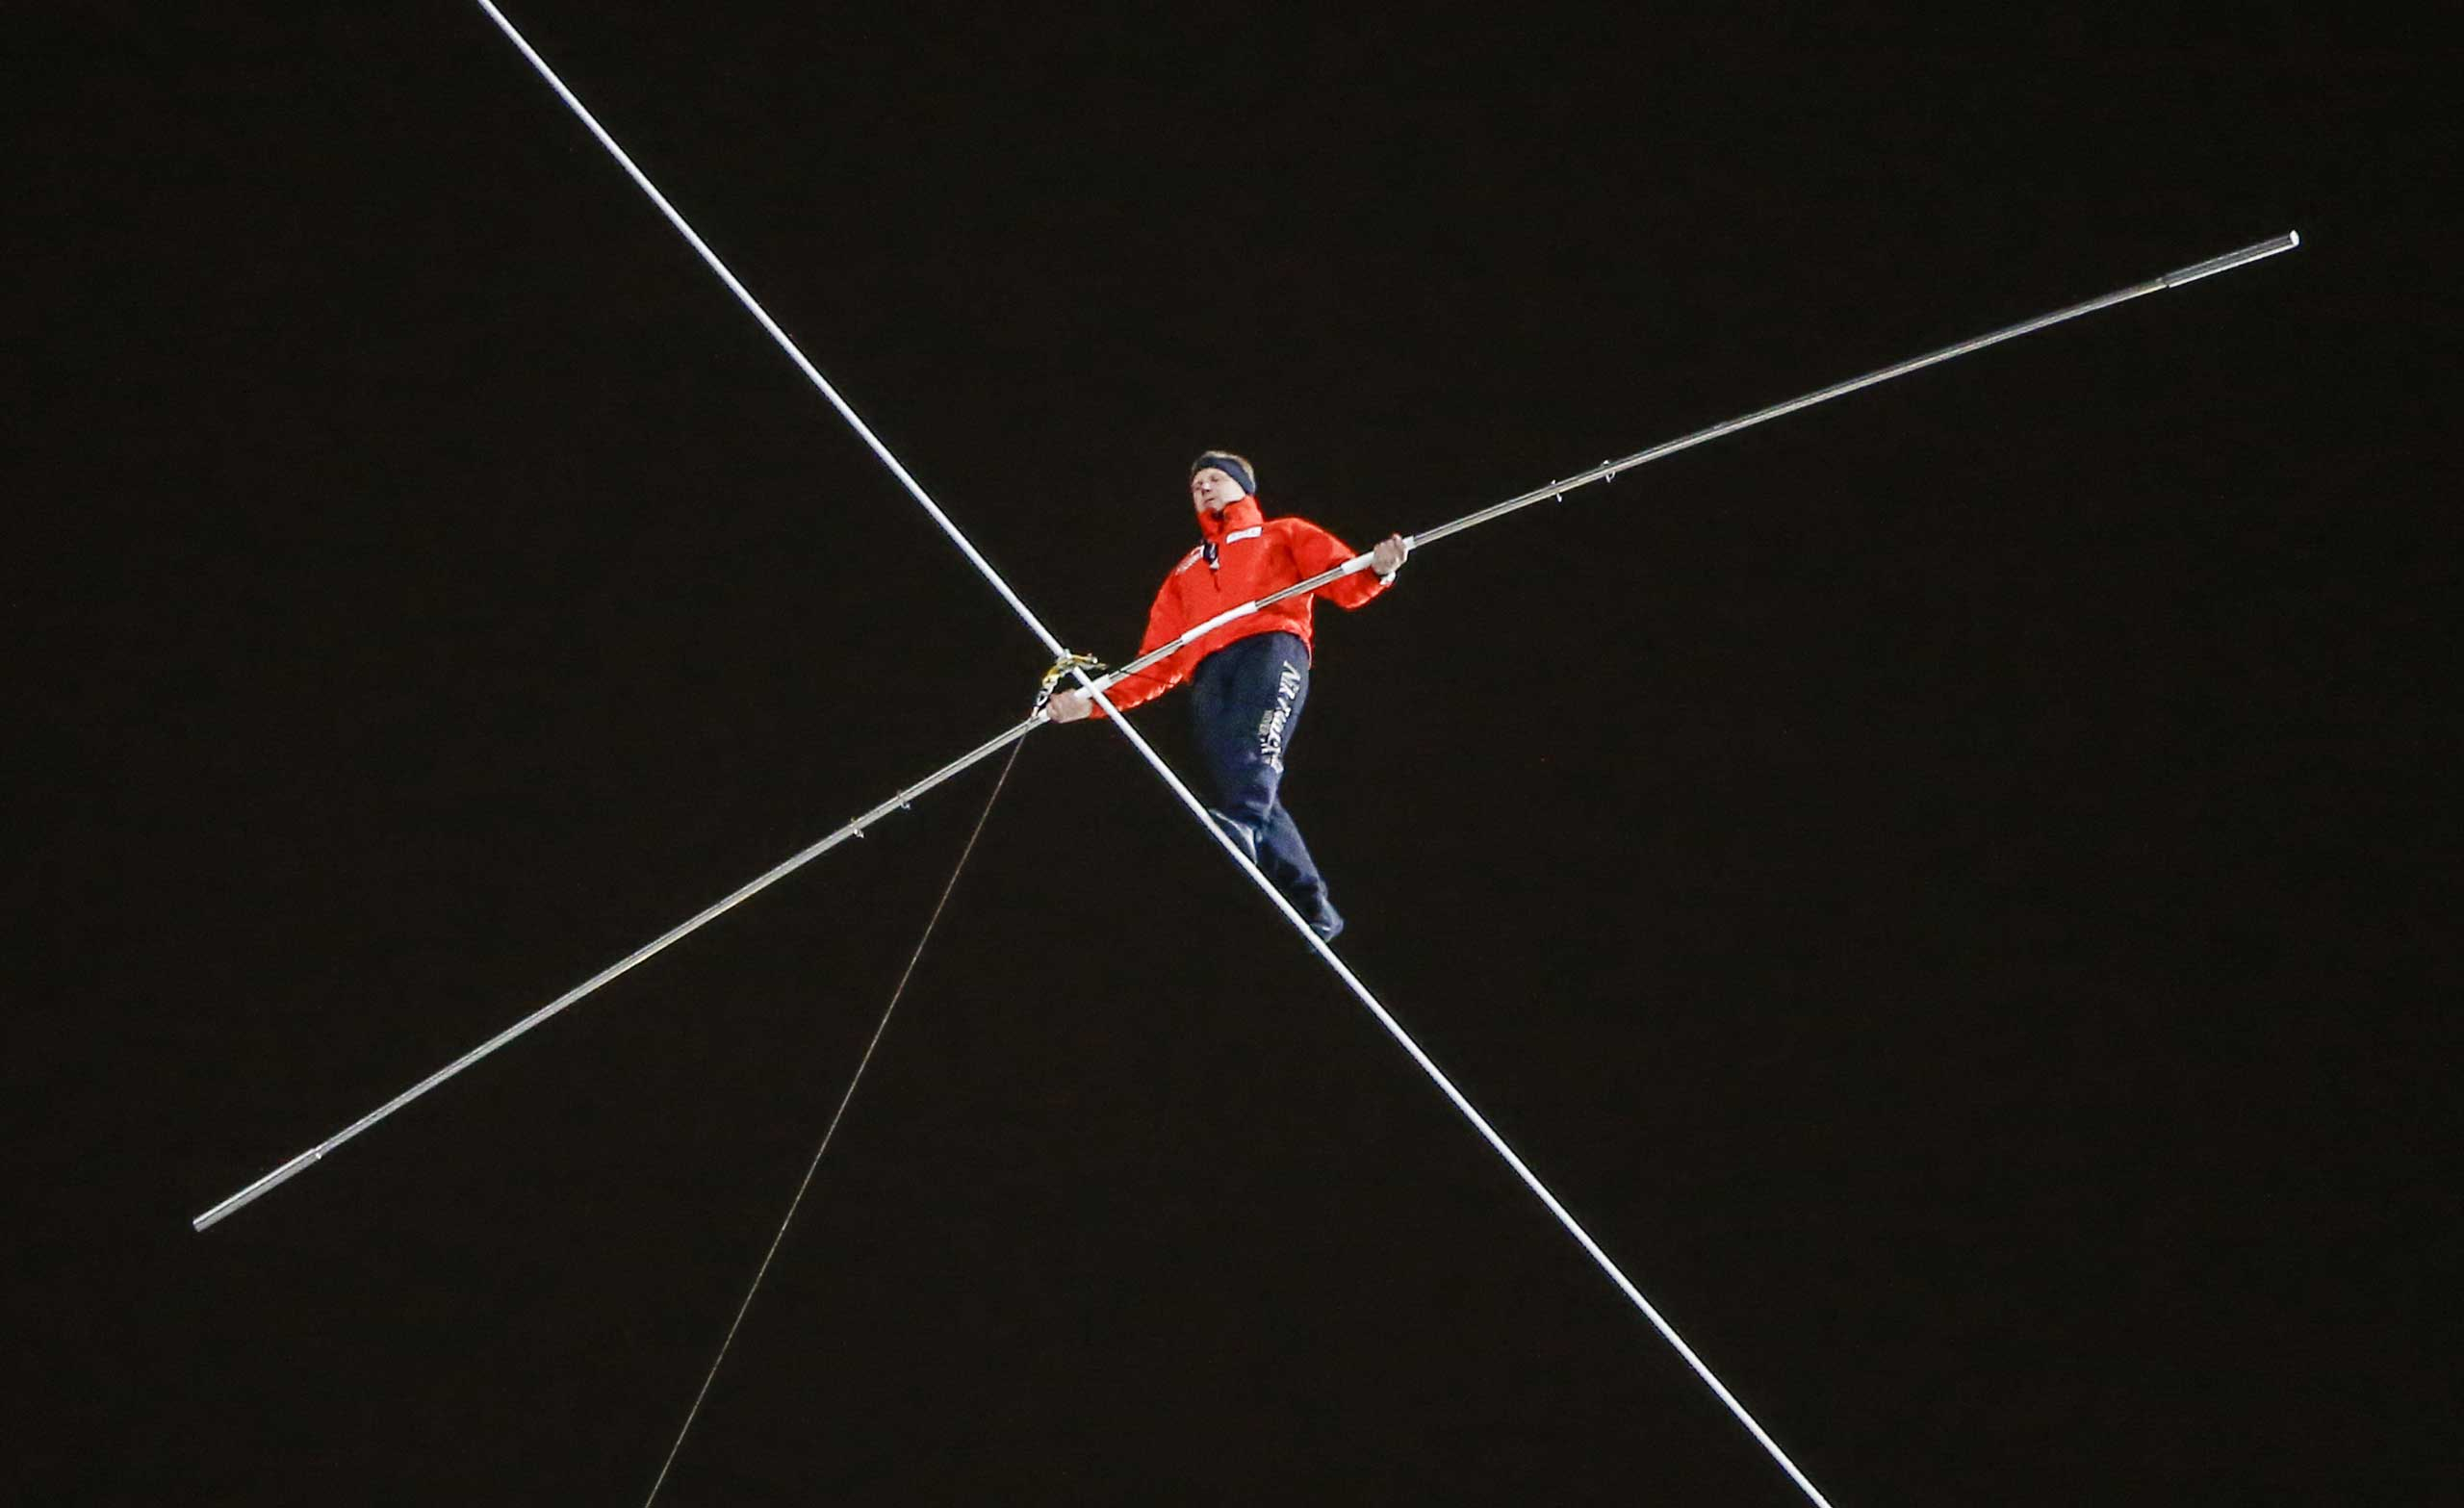 High-wire performer Nik Wallenda walks on a 3/4 inch (1.91 cm) wire between buildings across the Chicago River in Chicago, Nov. 2, 2014.